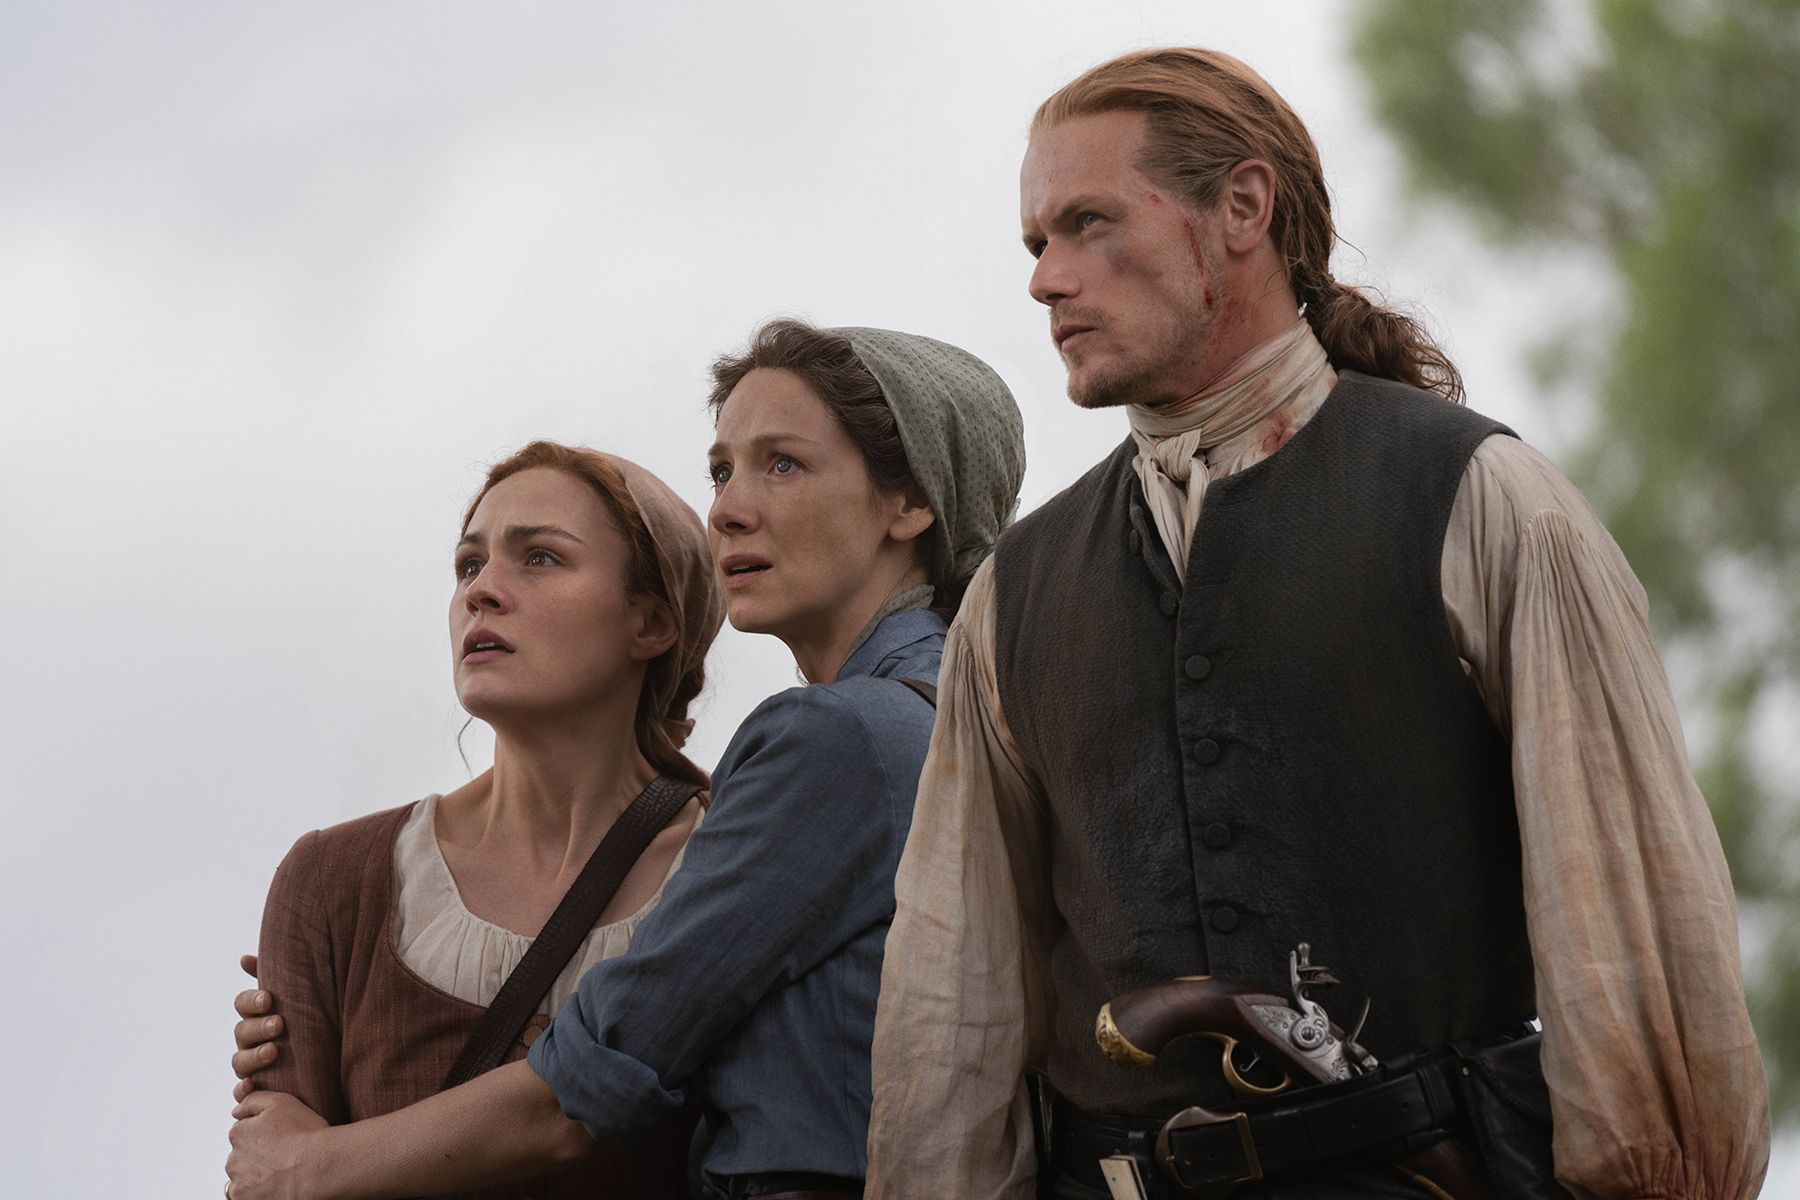 Outlander' Season 5 Gets February 2020 Release Date - What